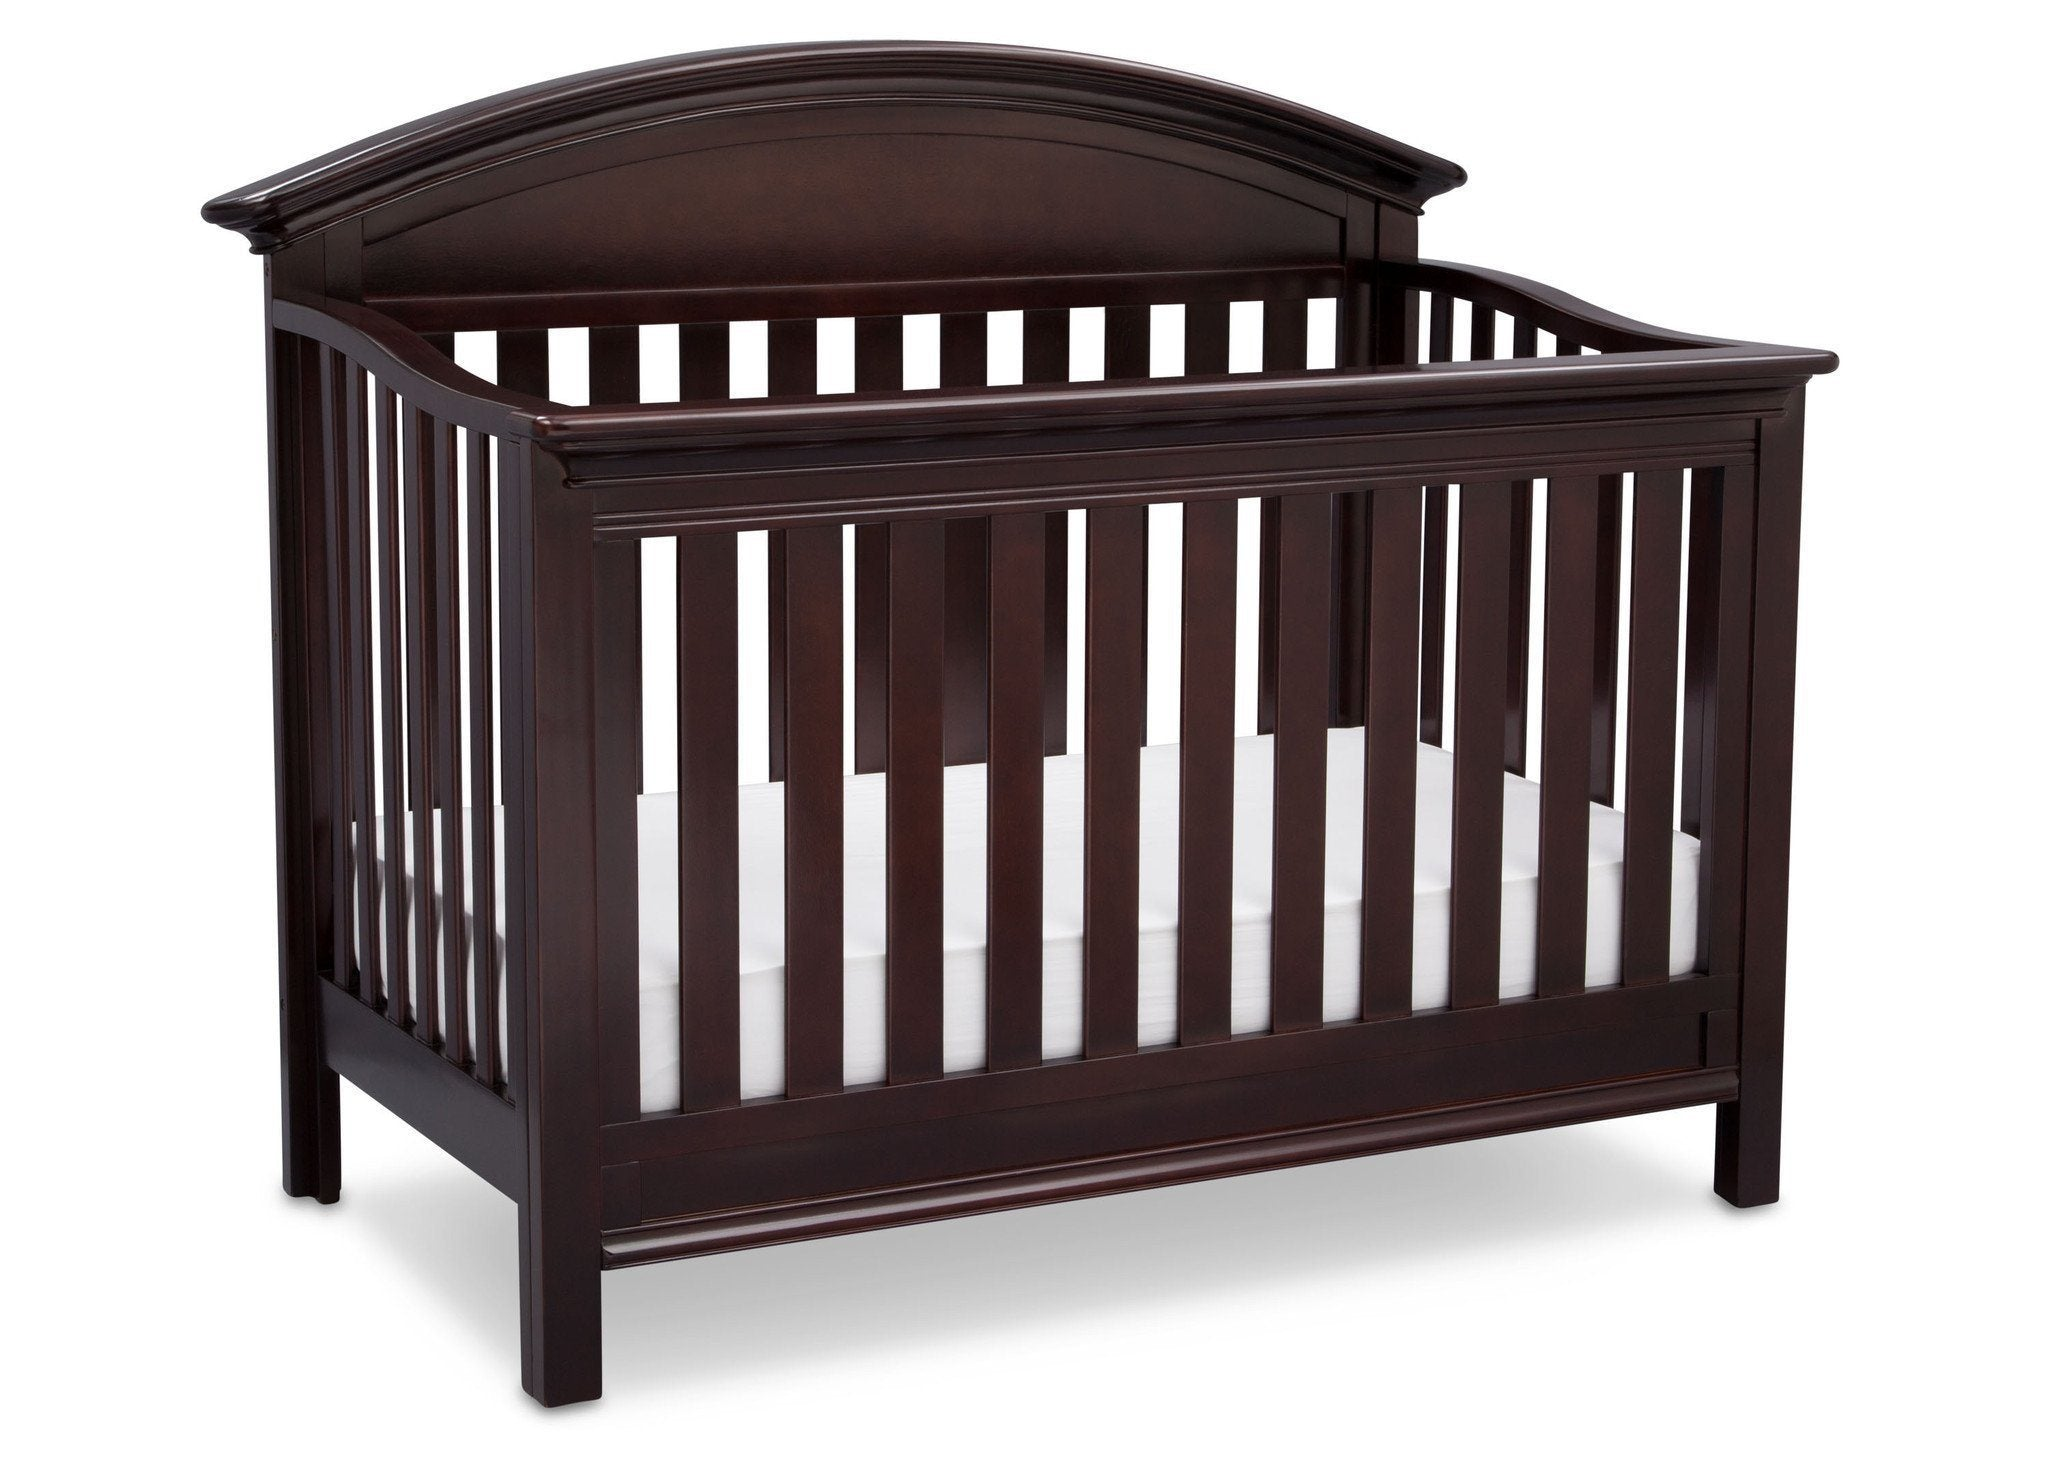 Serta Dark Chocolate (207) Aberdeen 4-in-1 Crib, Side View with Crib Conversion c4c